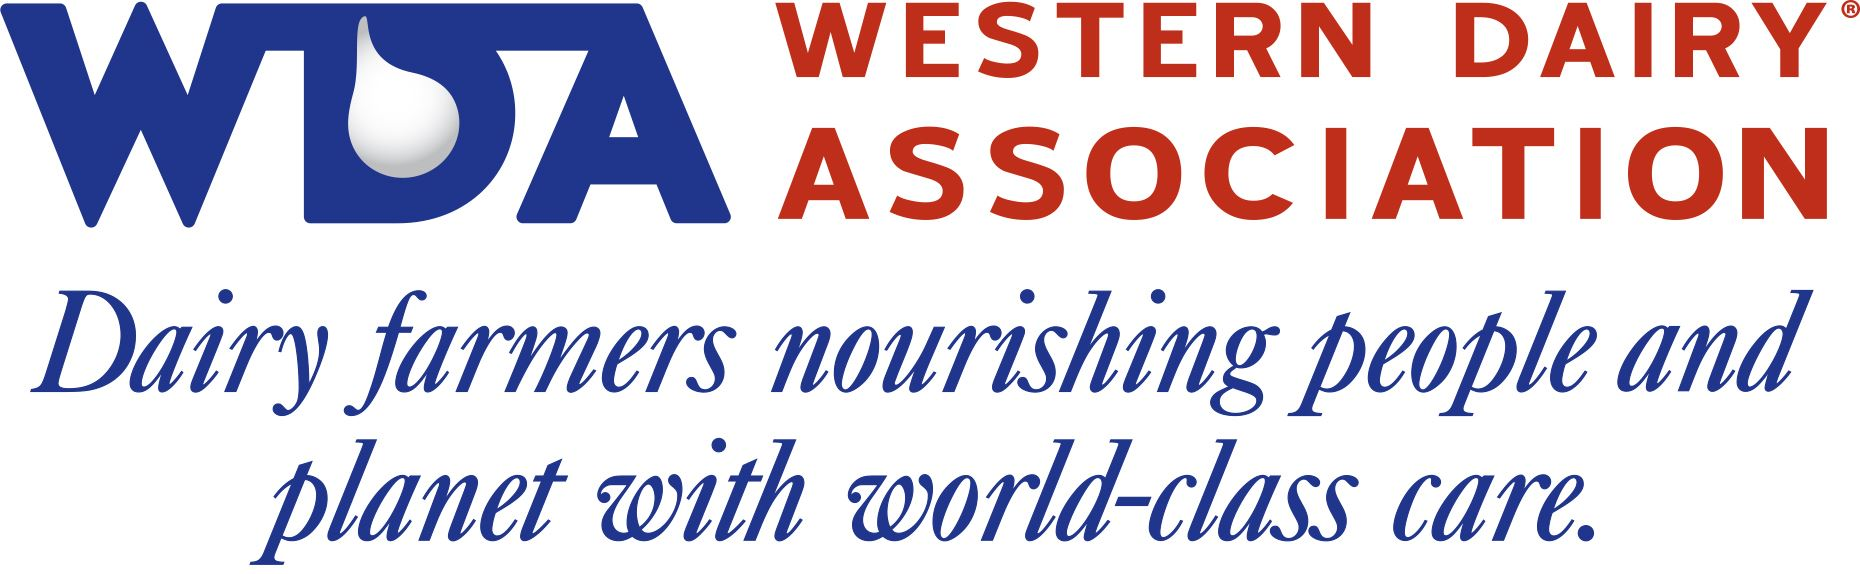 Western Dairy Association sign Dairy farmers nourisihing people and planet with world-class care